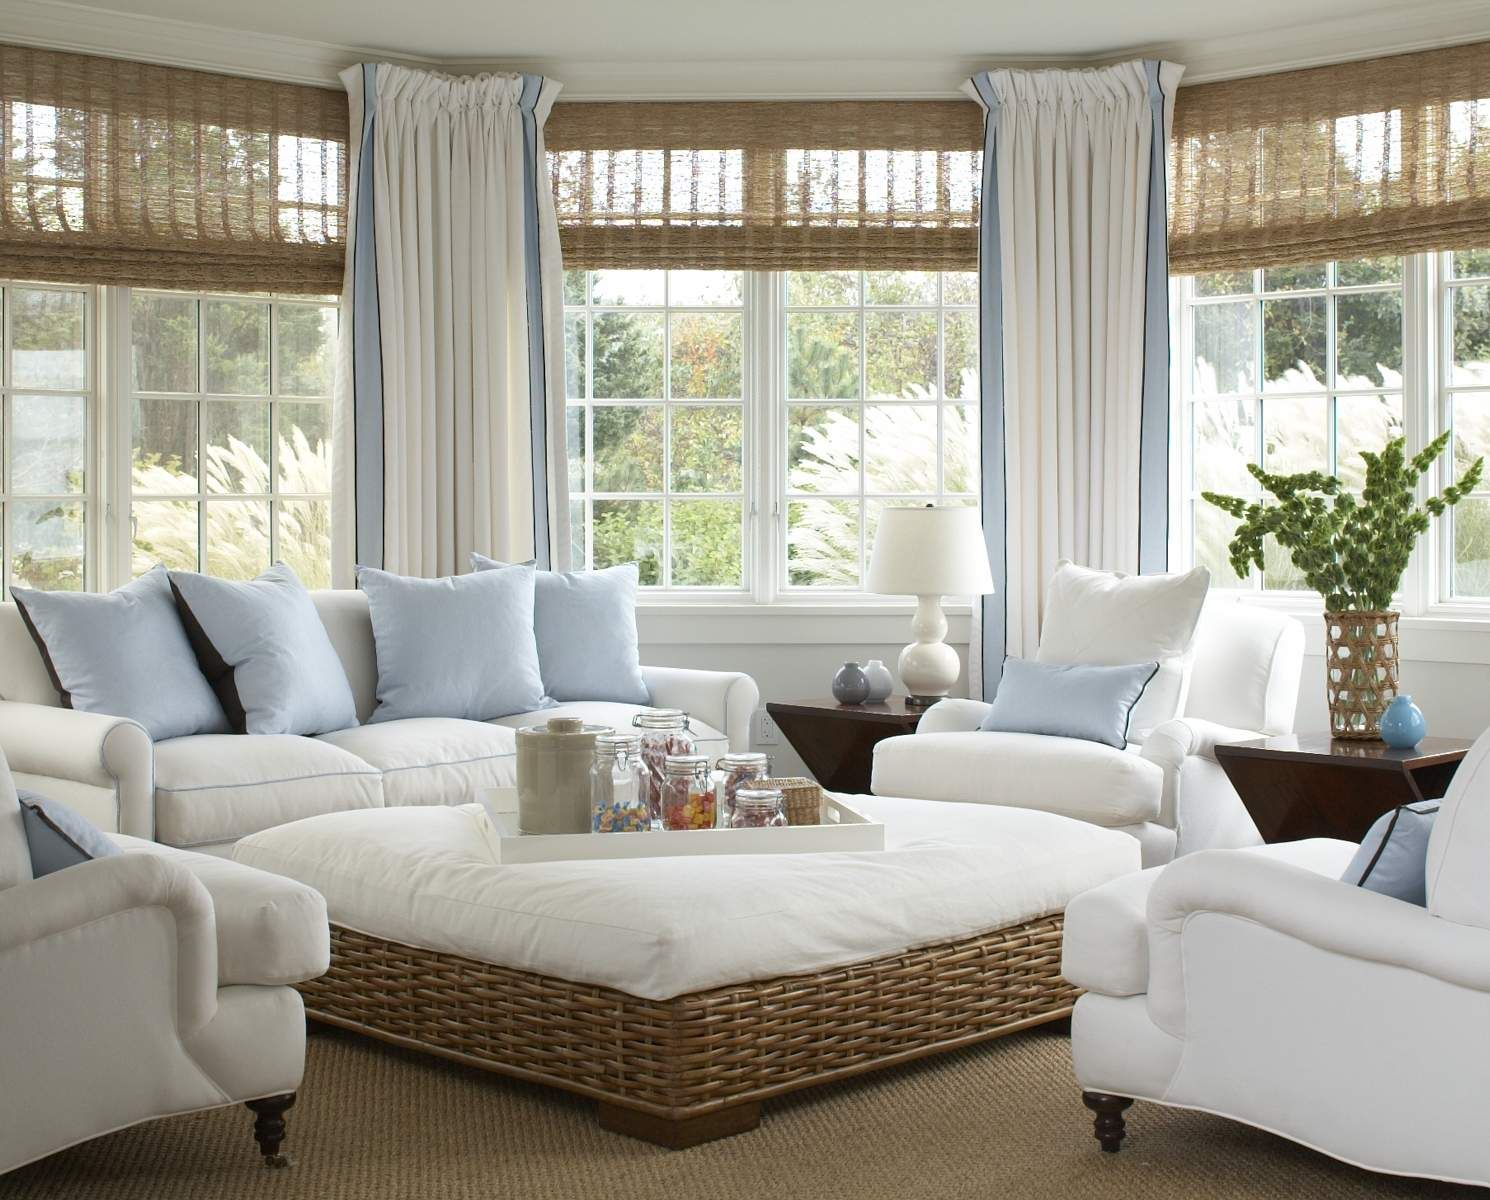 Living Room Design Furniture Style Archive Awash In White Sun Furniture And Sunroom Ideas